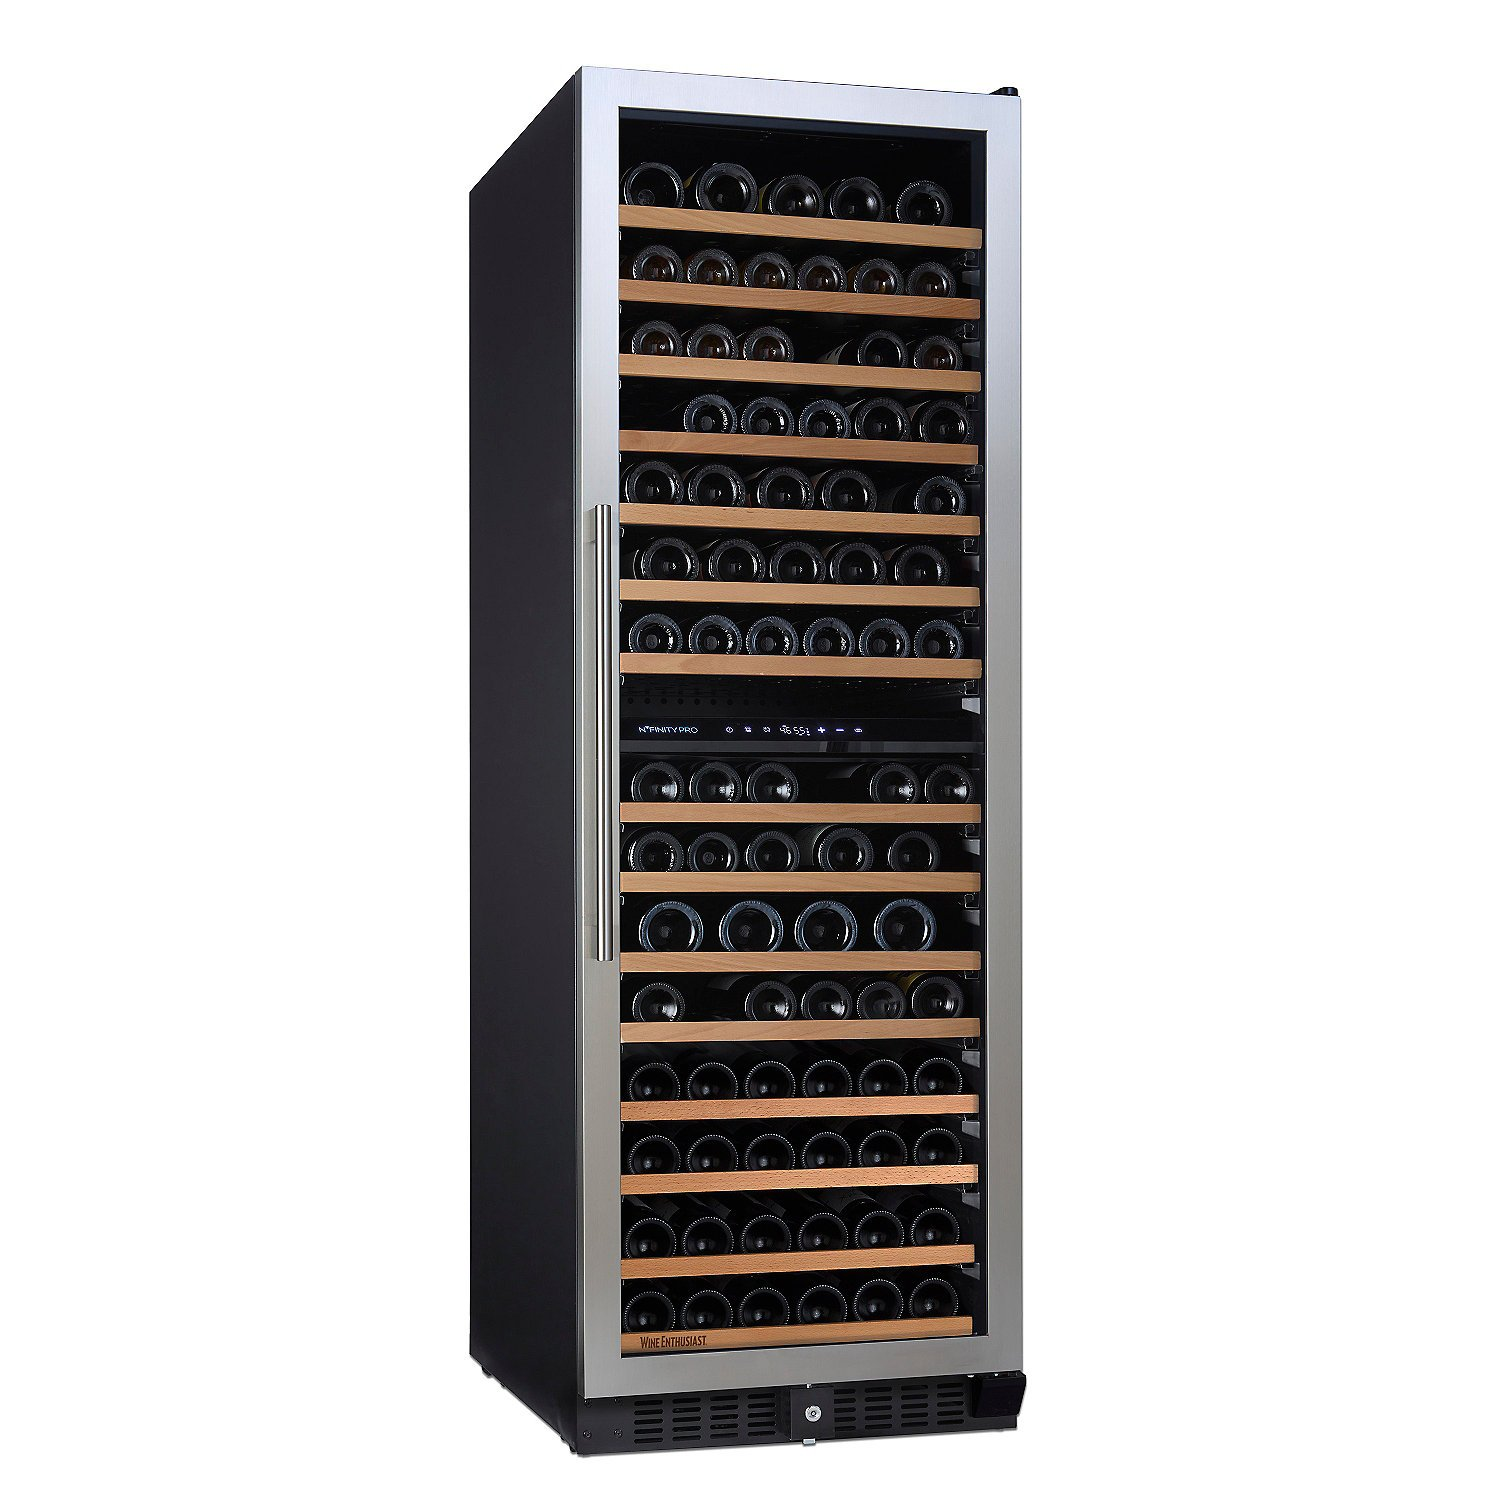 N'FINITY PRO L by Wine Enthusiast Dual Zone Wine Cellar - Stainless Steel Door with Right Hinge N' FINITY